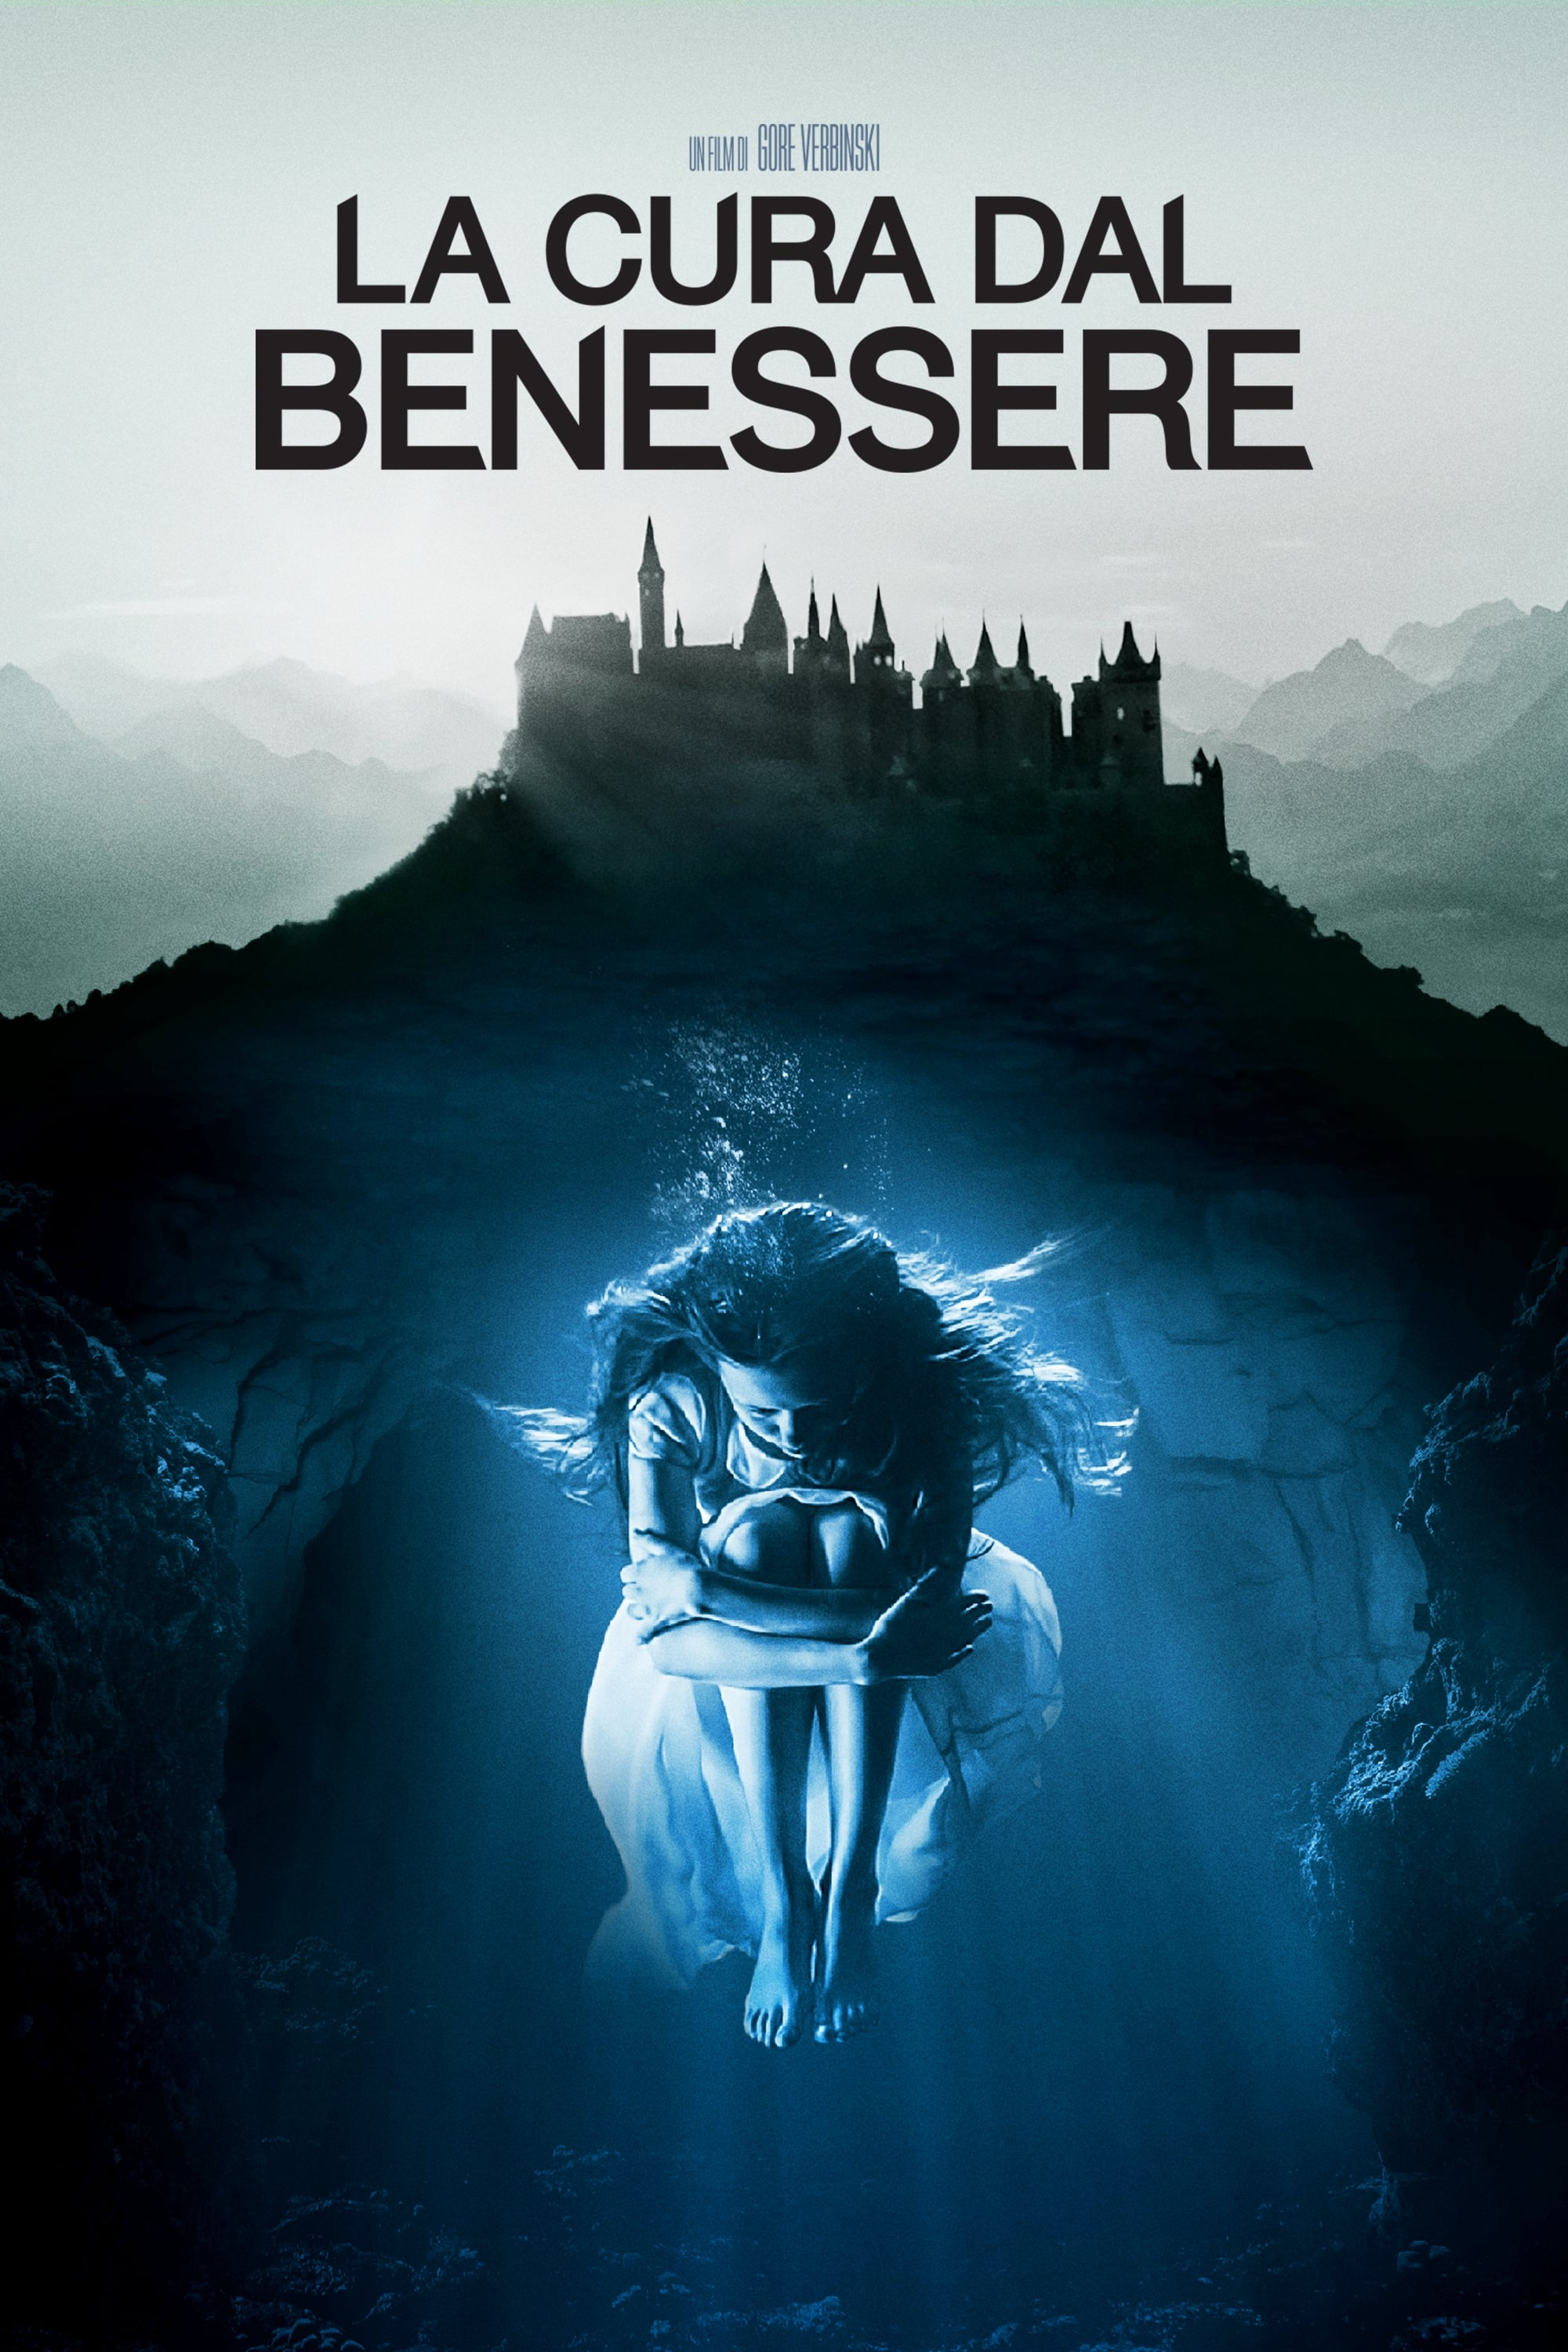 A Cure For Wellness Film